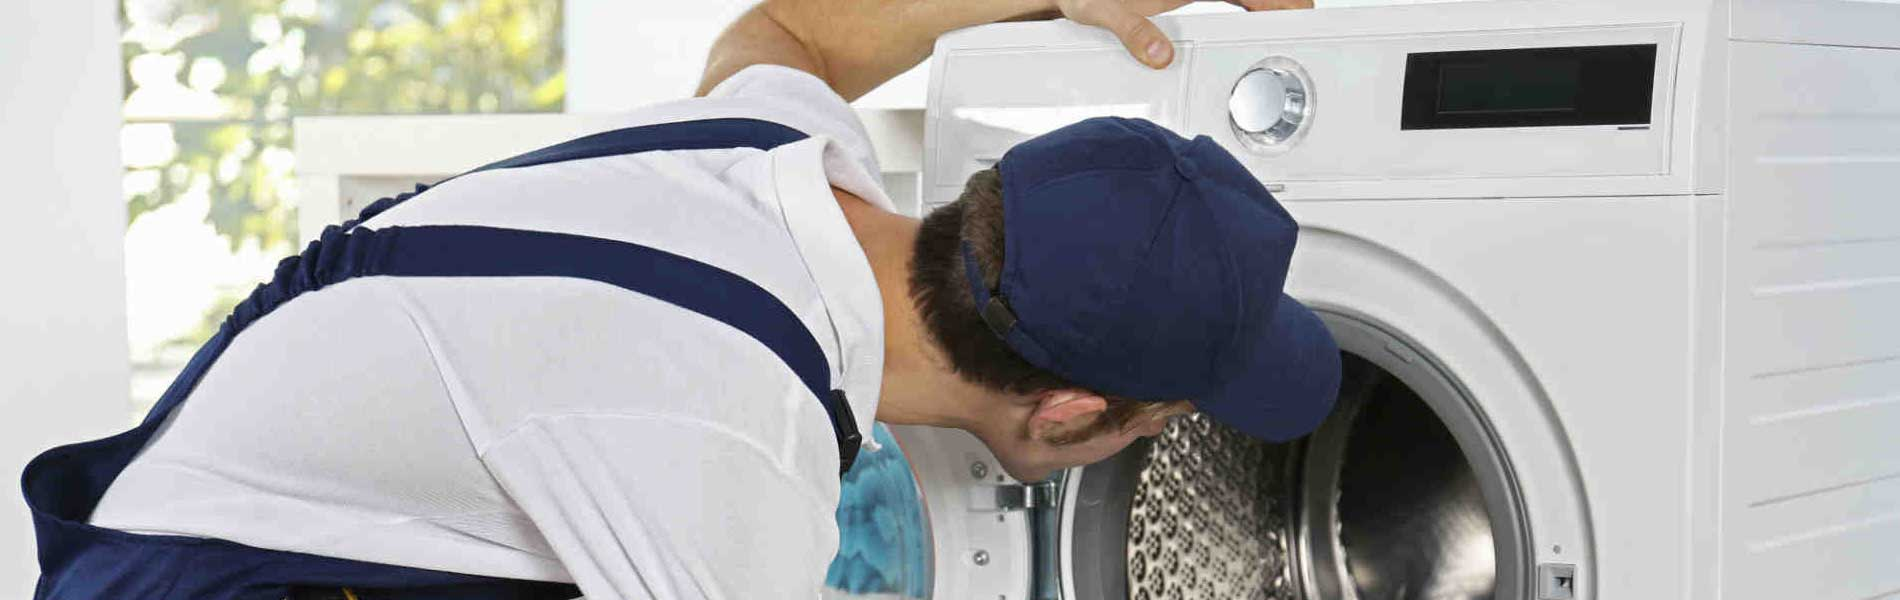 Godrej Washing Machine Mechanic in Manapakkam